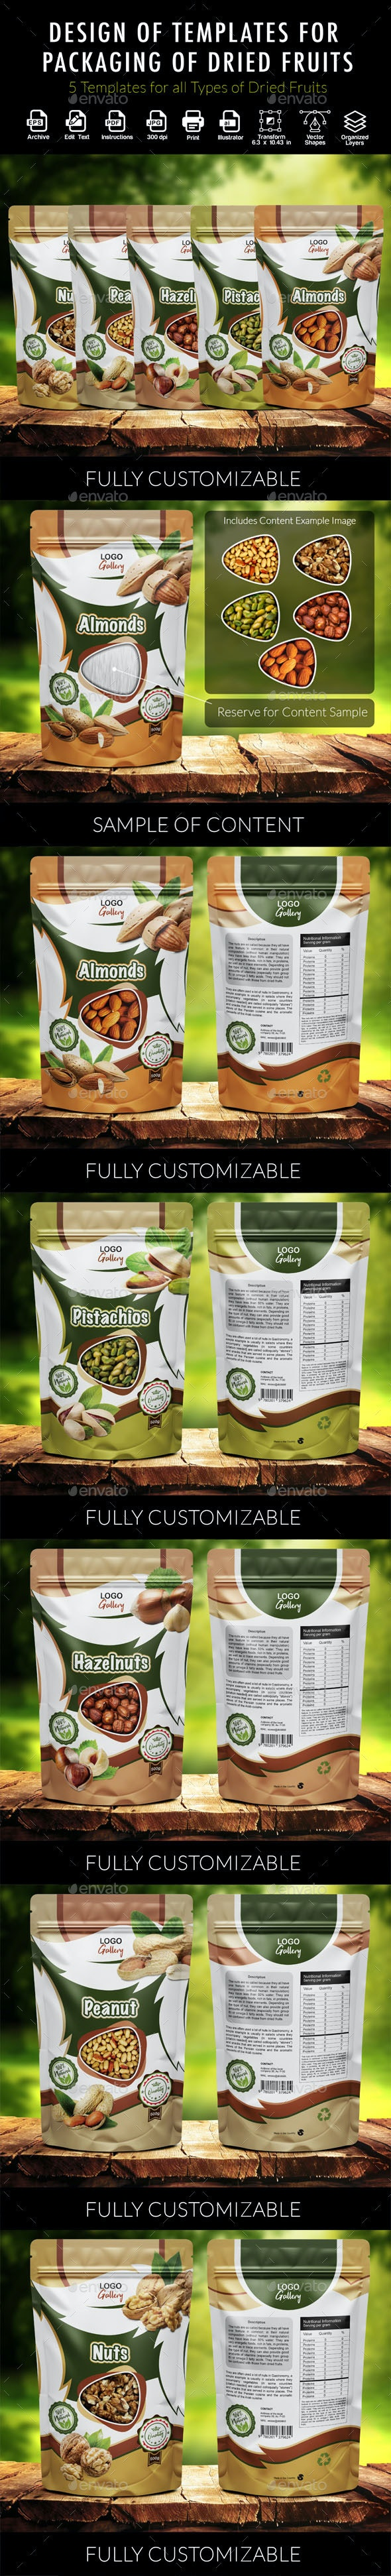 Design of Templates for Packaging of Dried Fruits - Packaging Print Templates